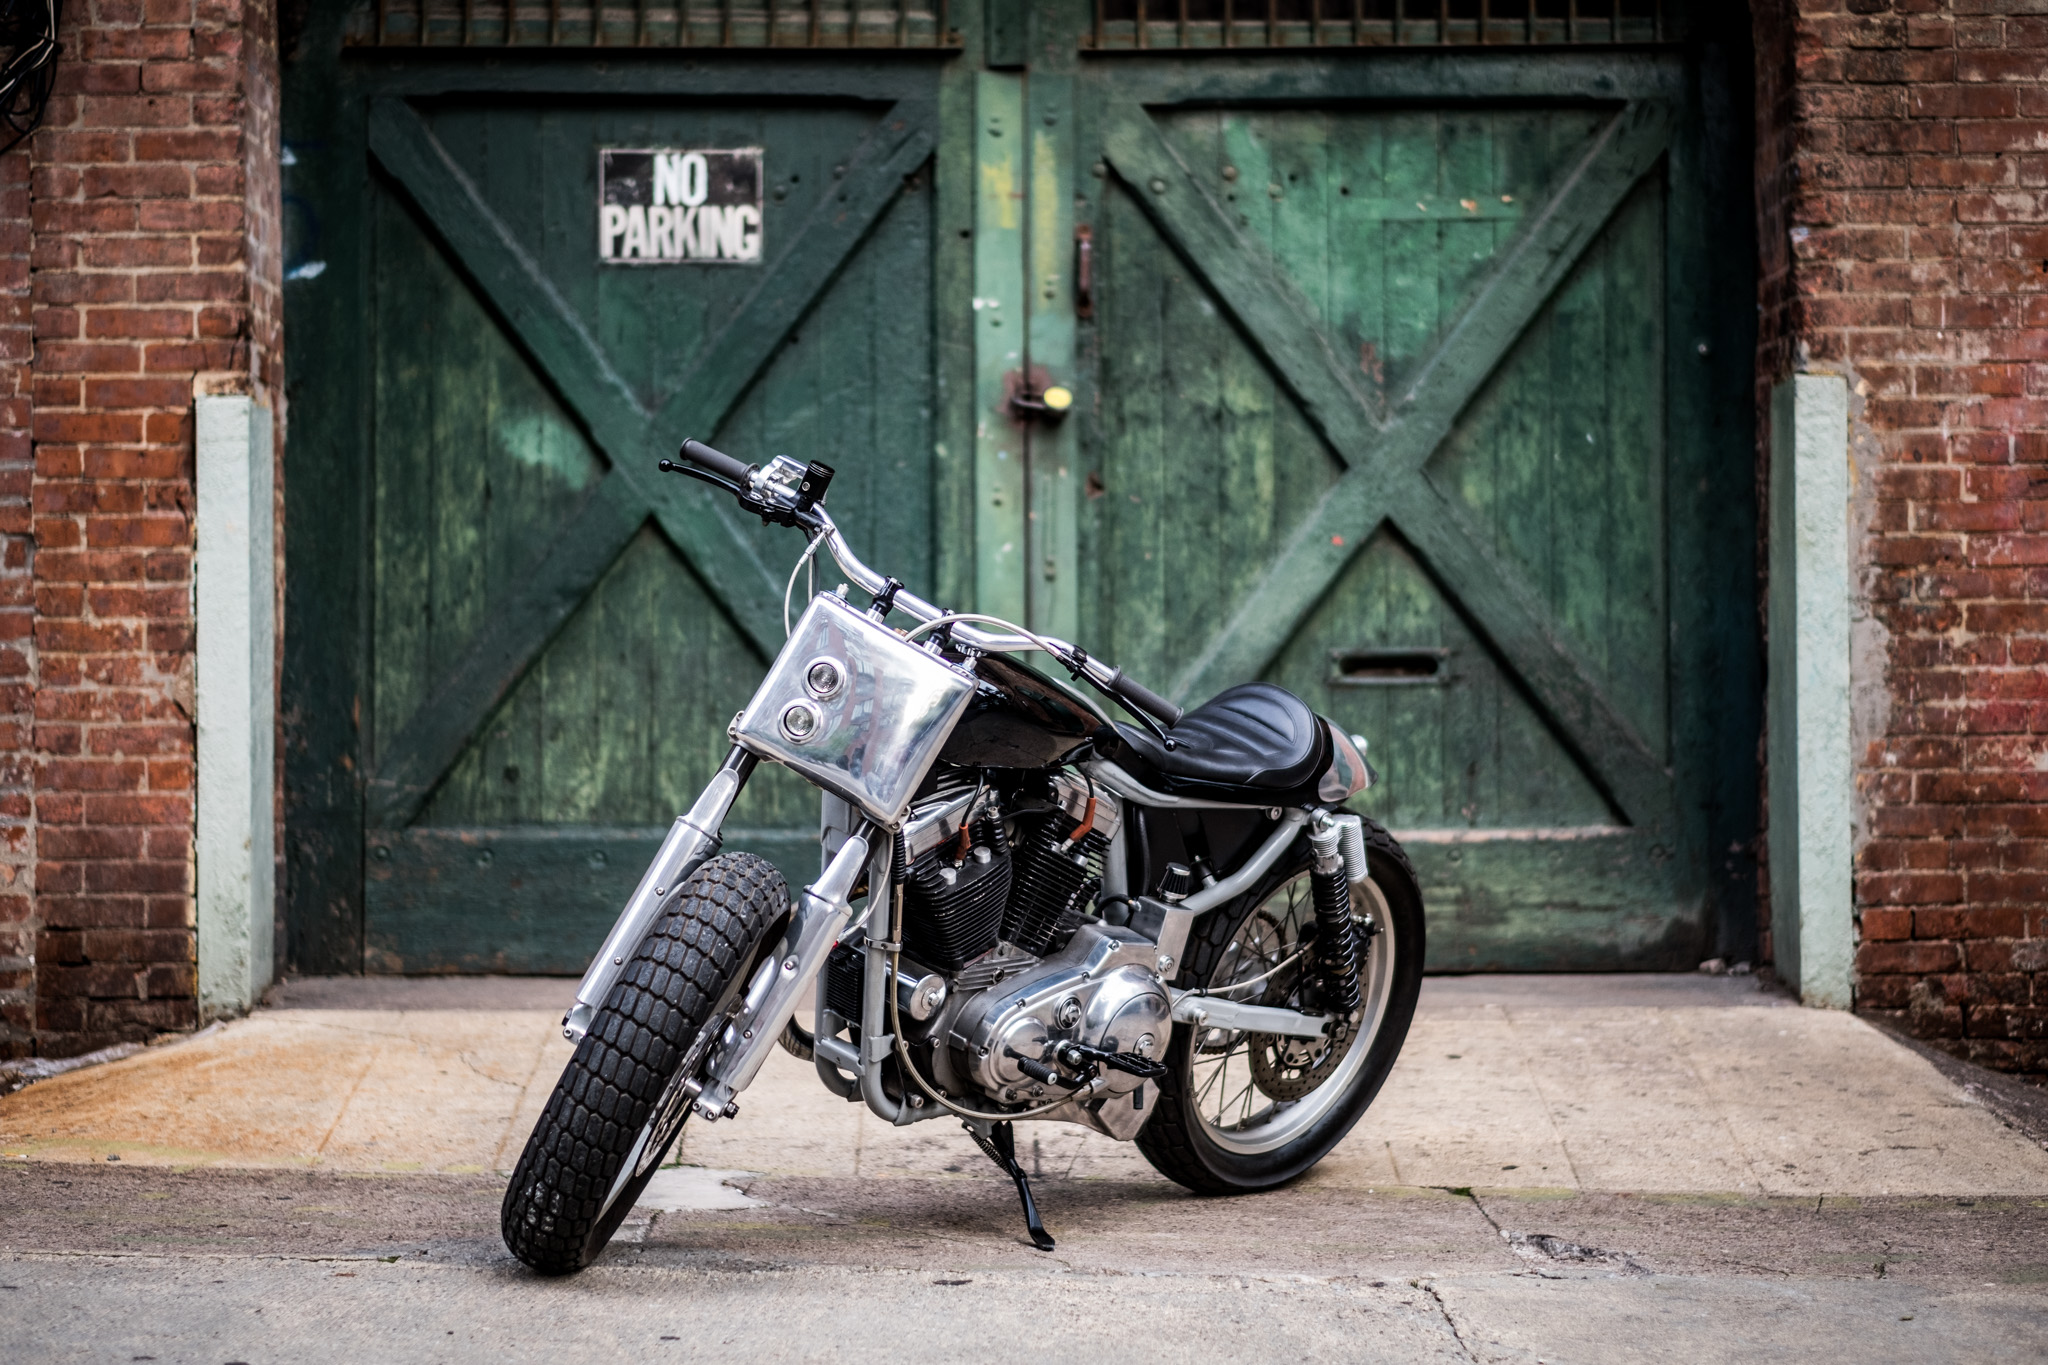 Tim Harney Motorcycles, Custom motorcycle, street tracker, Harley XL 883